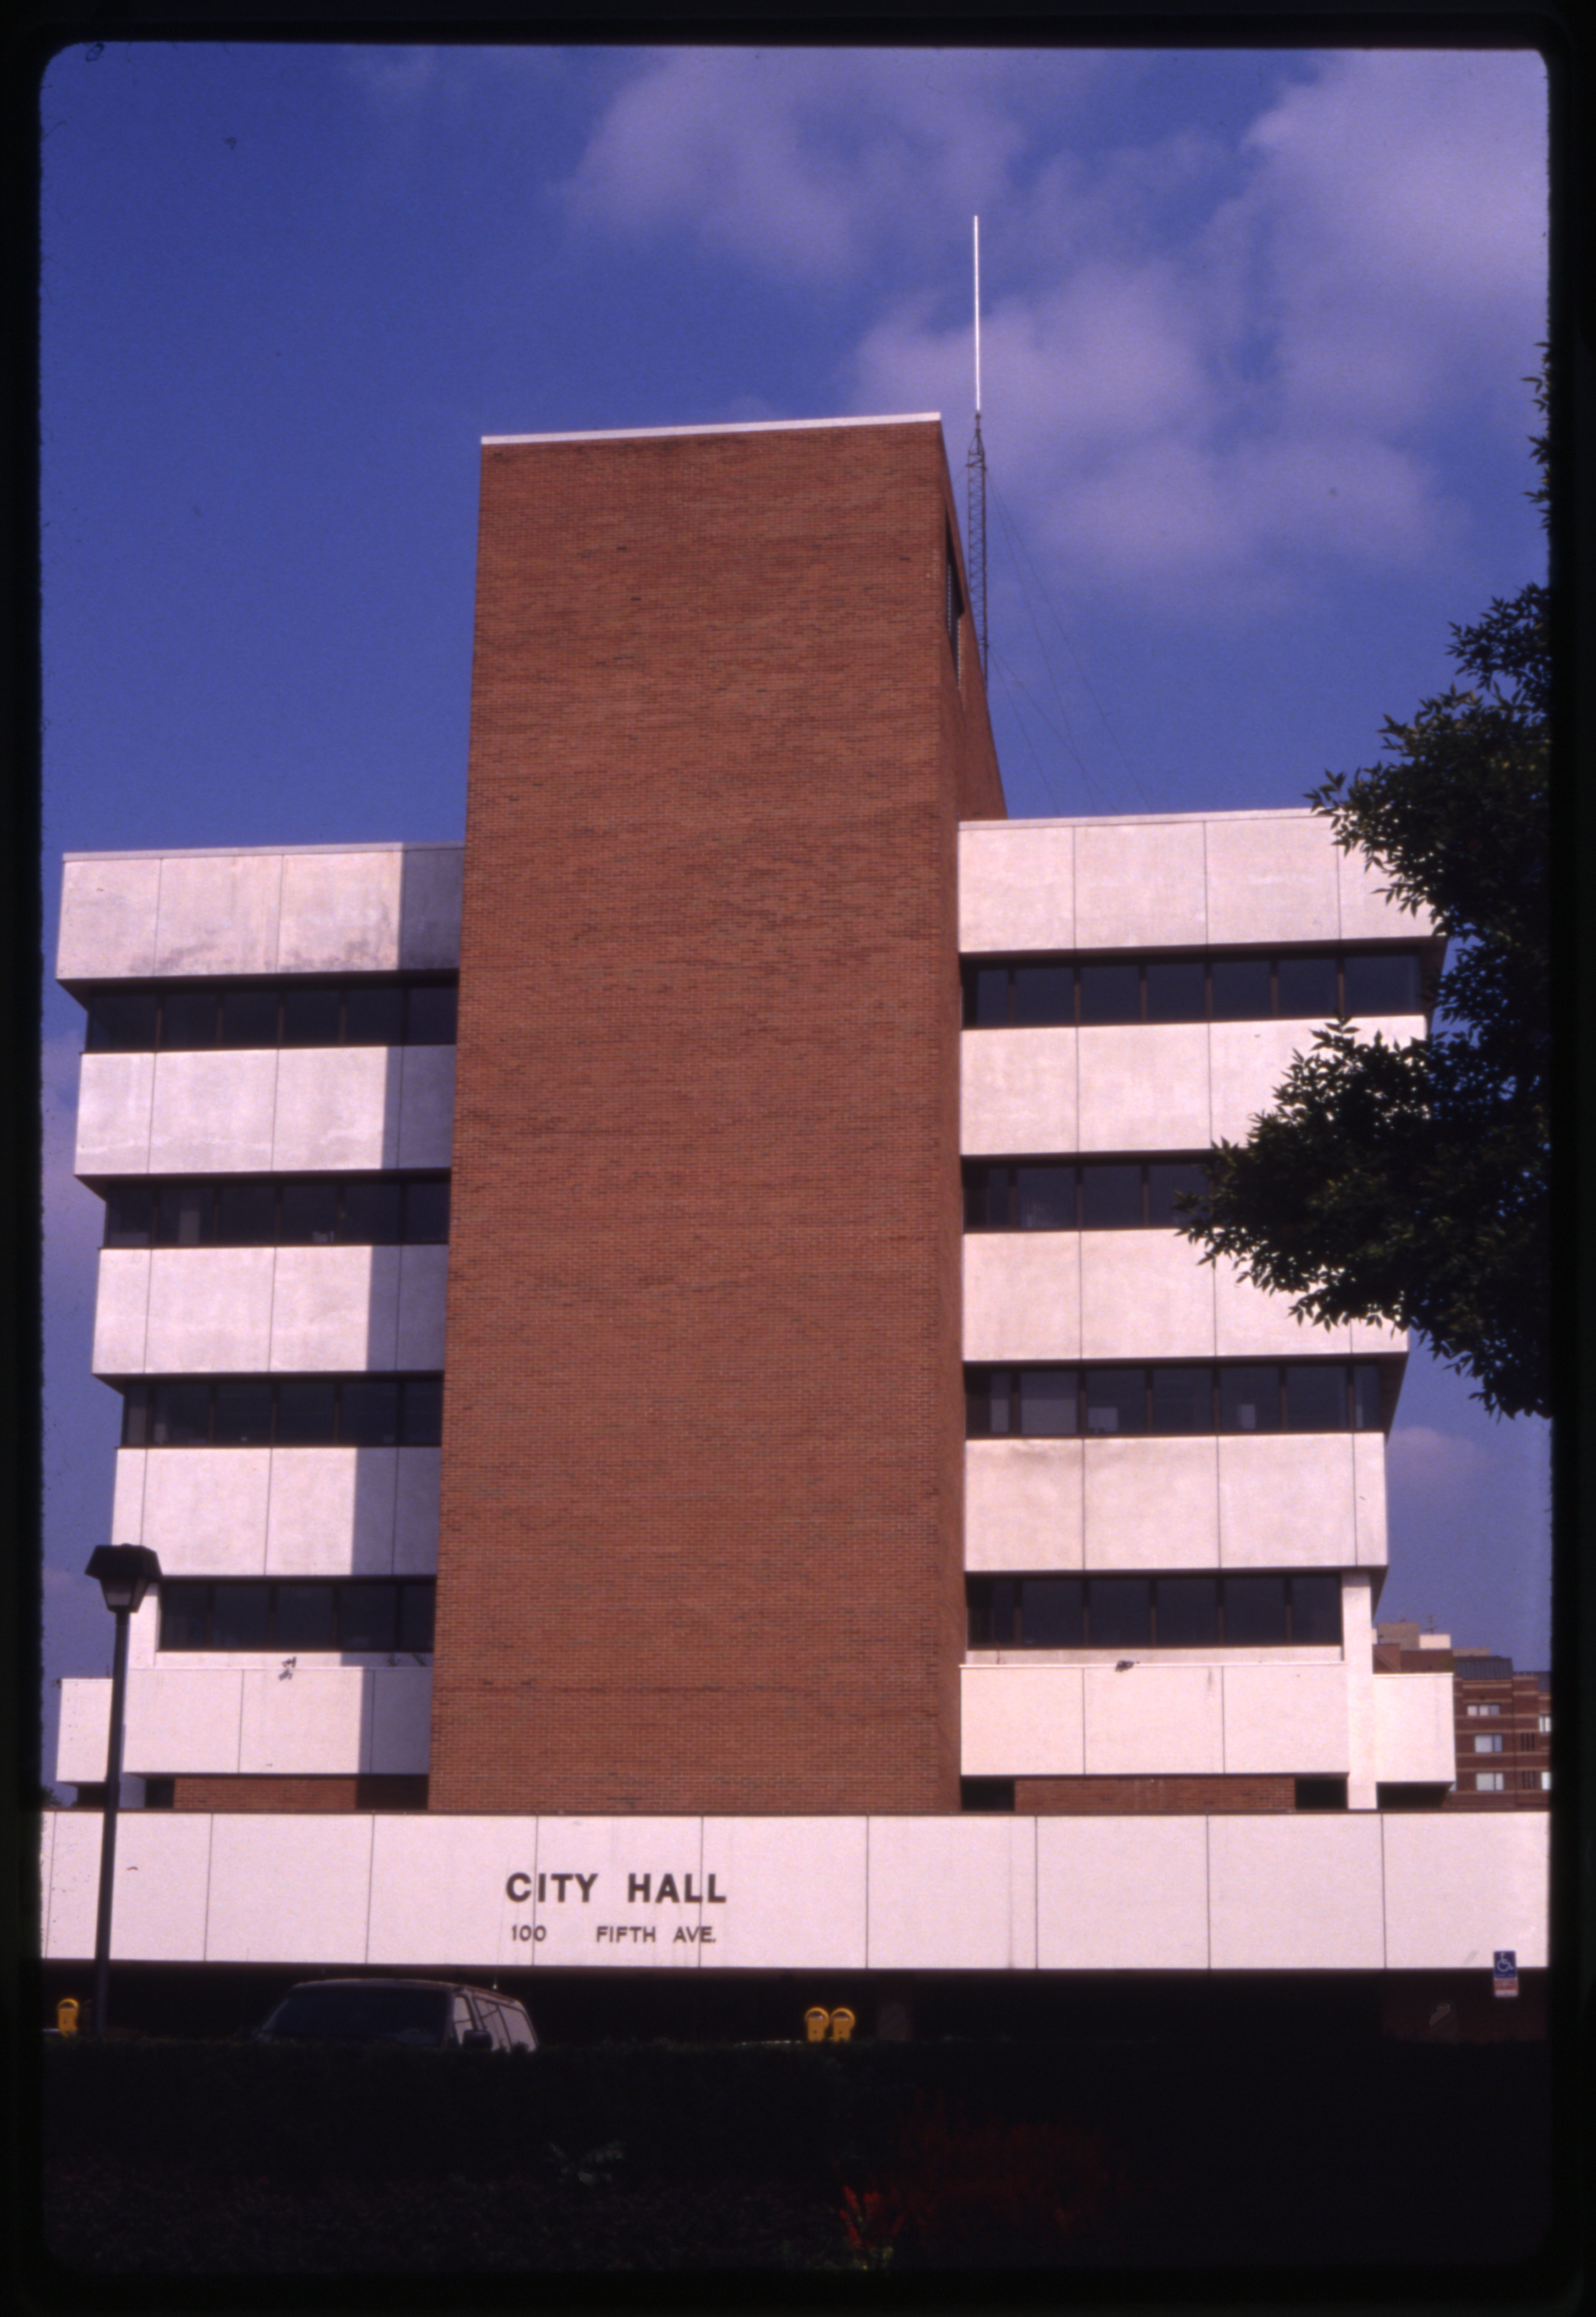 Ann Arbor City Hall, 1992 image